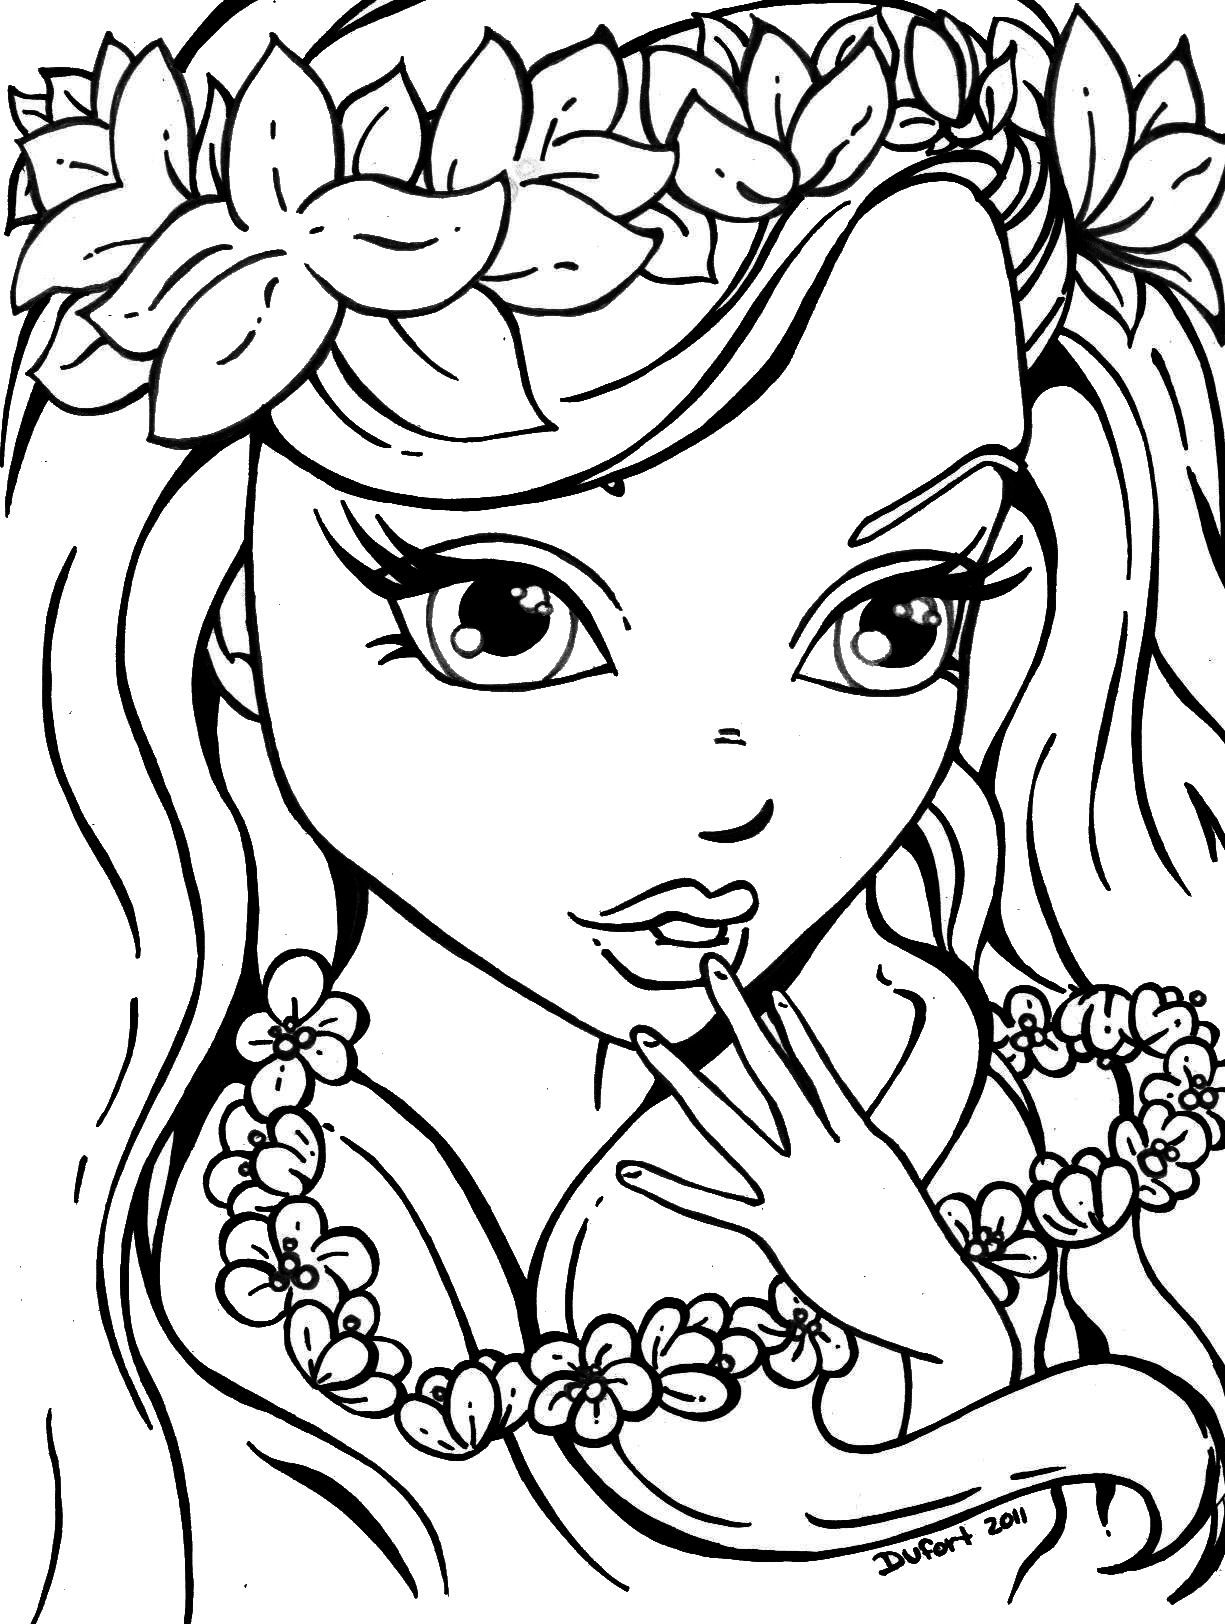 find this pin and more on printables for girls by sak63 - Colouring Pictures For Girls